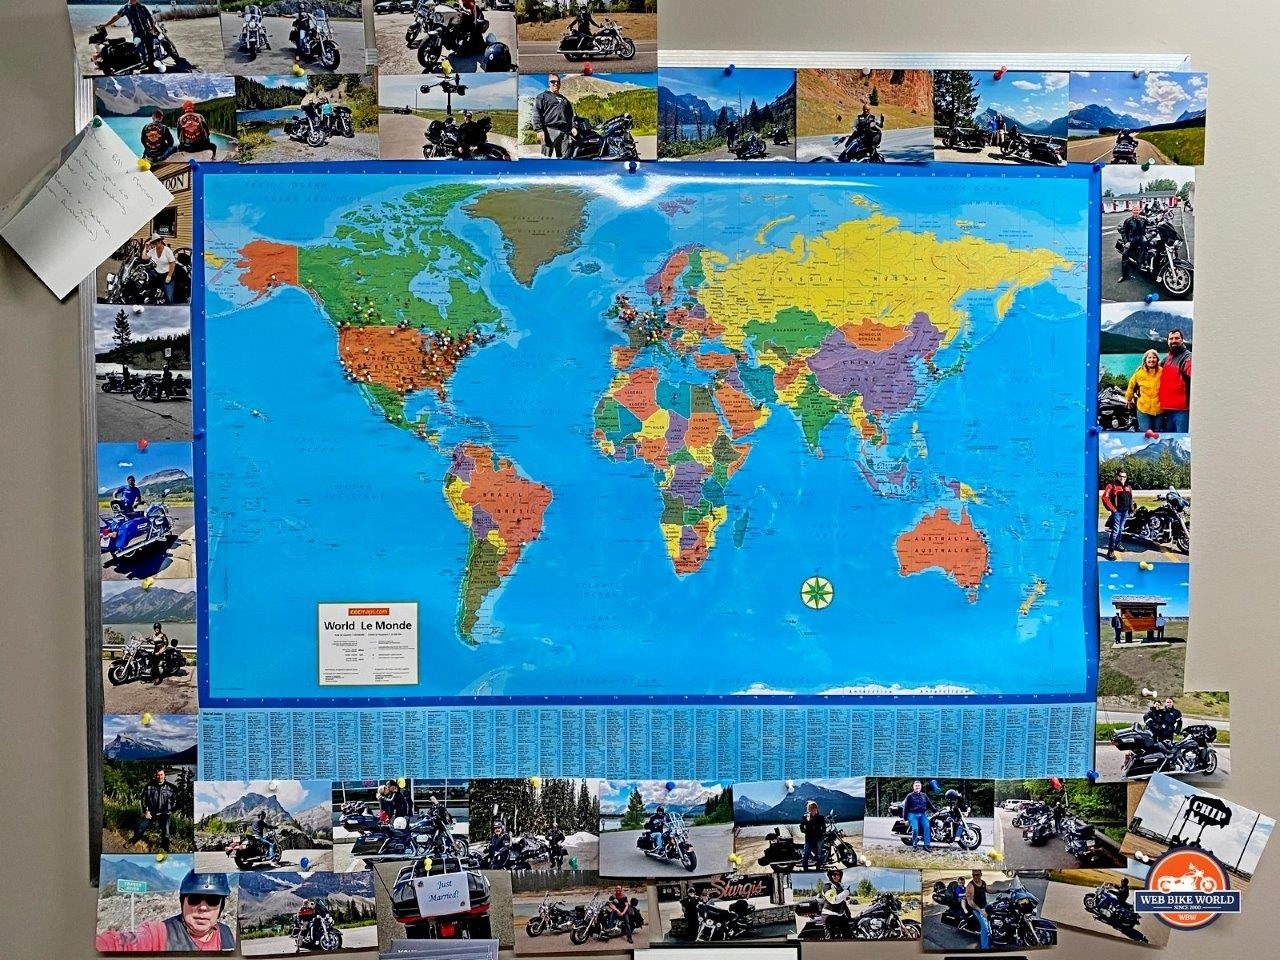 Calgary Harley's world map showing where visitors have come from.